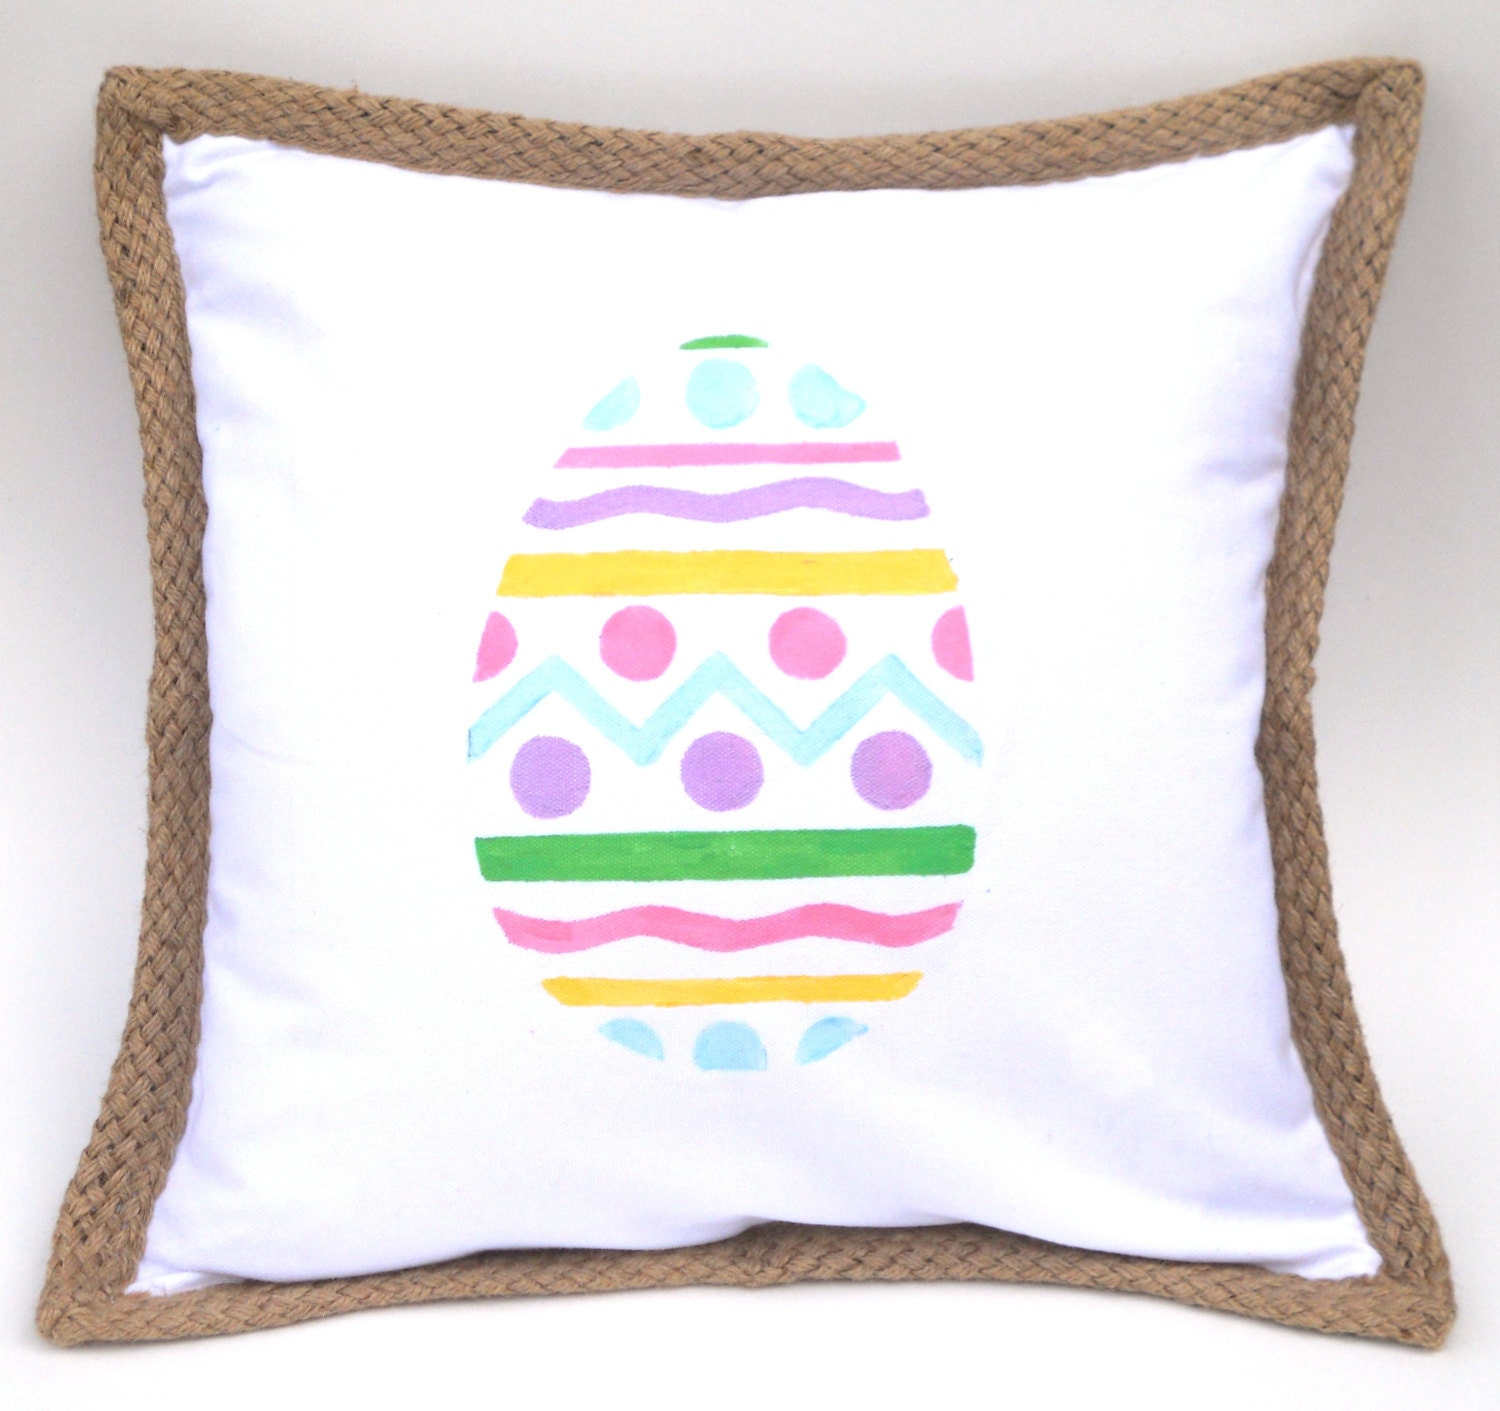 Decorative Pillows For Easter : Easter Egg Pillow Cover